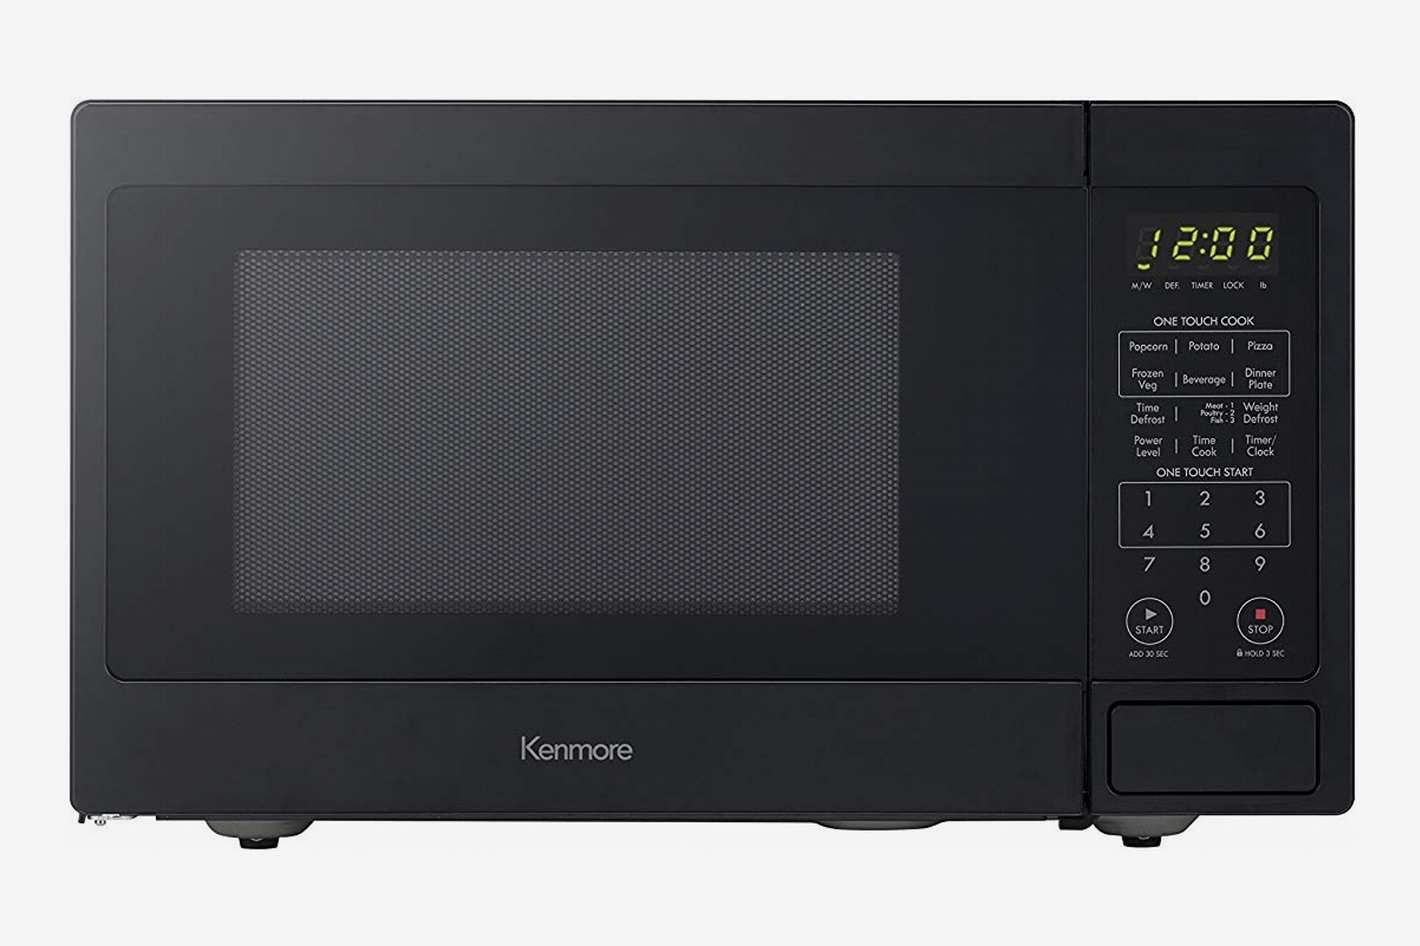 The Best Microwave Ovens On Amazon According To Hyperenthusiastic Reviewers Microwave Countertop Microwave Oven Built In Microwave